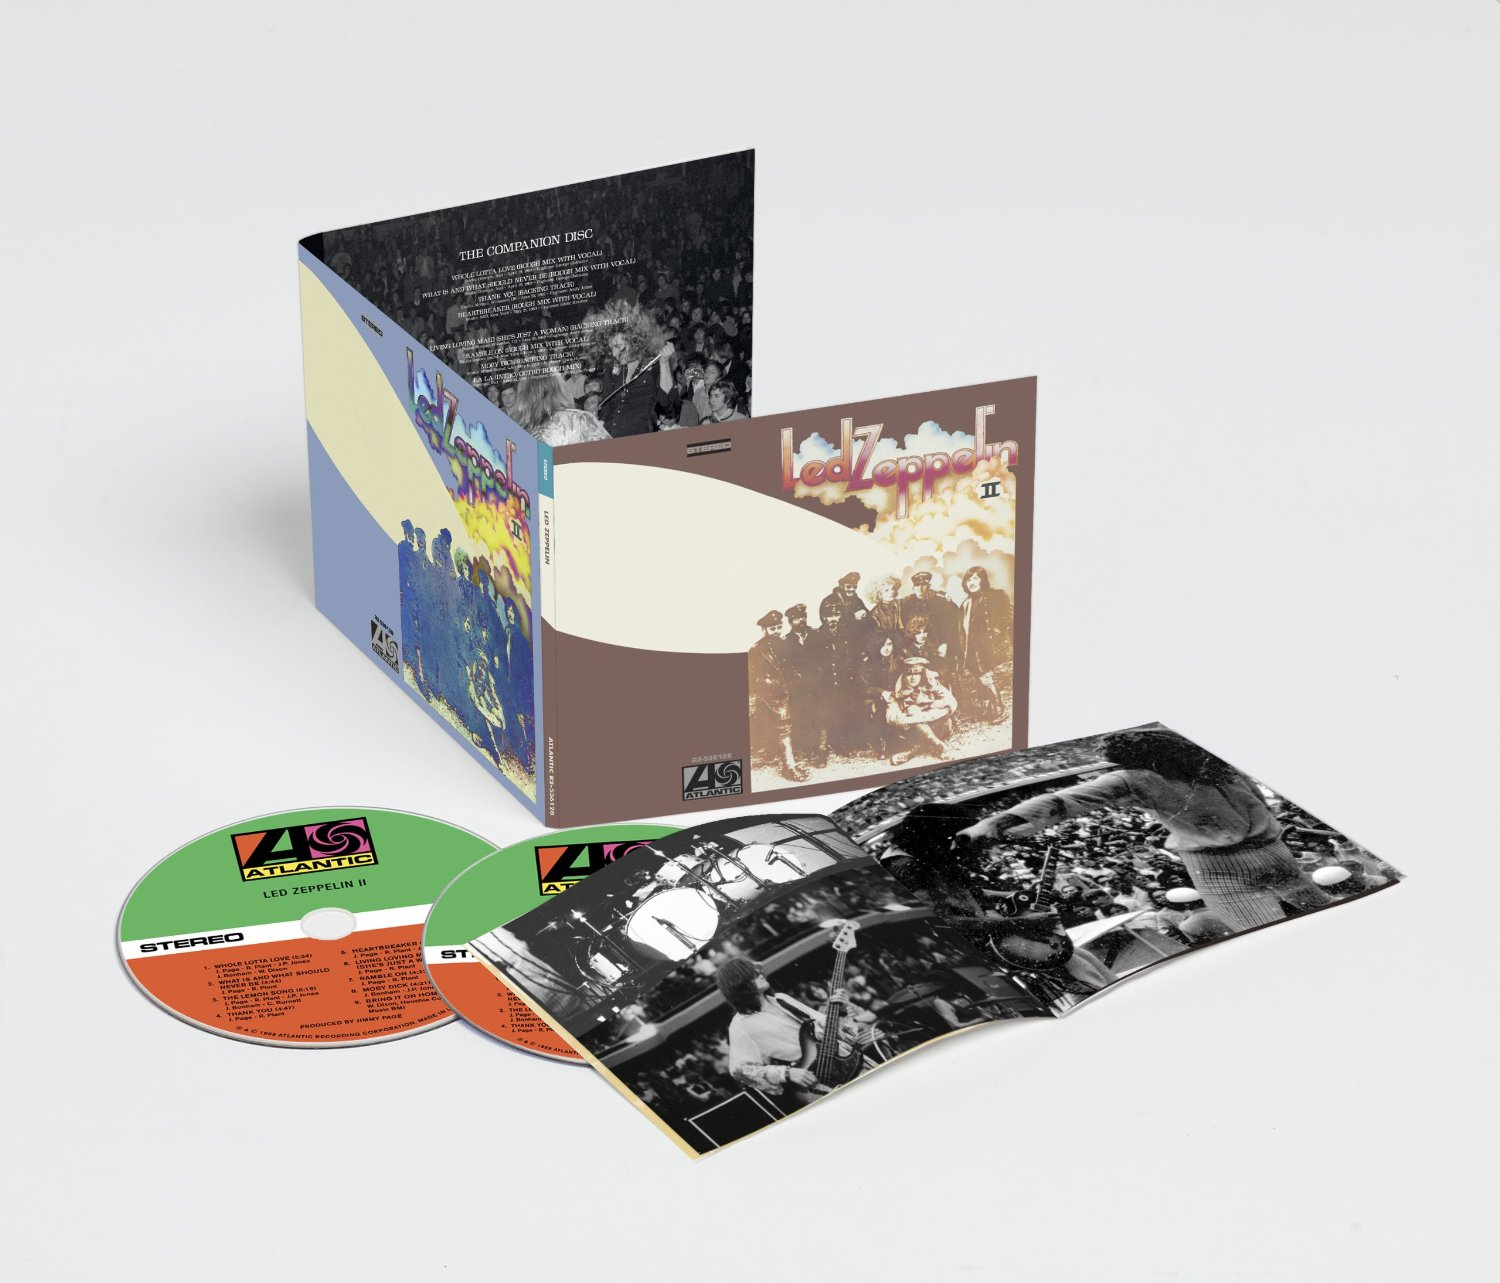 Led Zeppelin 2014 reissues / Led Zeppelin II 2CD deluxe